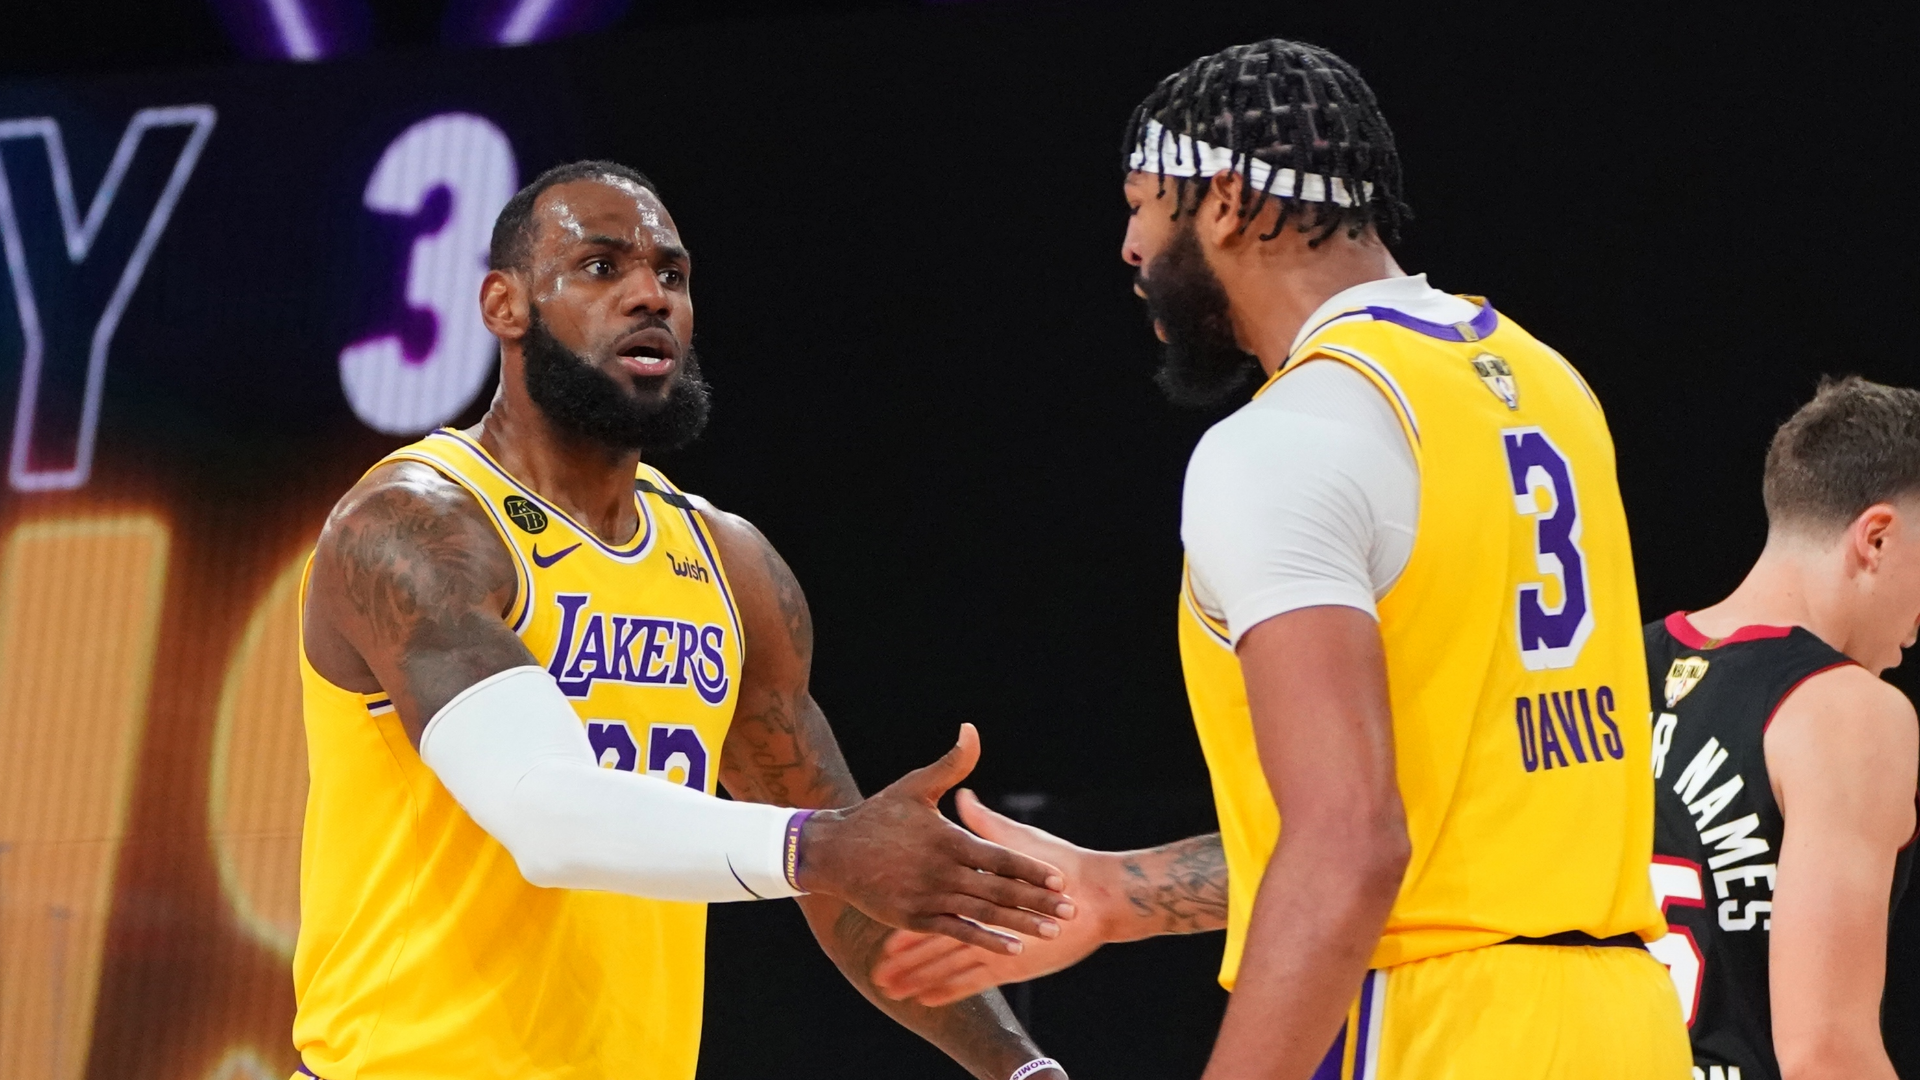 Nba Finals 2020 Los Angeles Lakers Vs Miami Heat Game 1 Live Score Updates News Stats And Highlights Nba Com India The Official Site Of The Nba